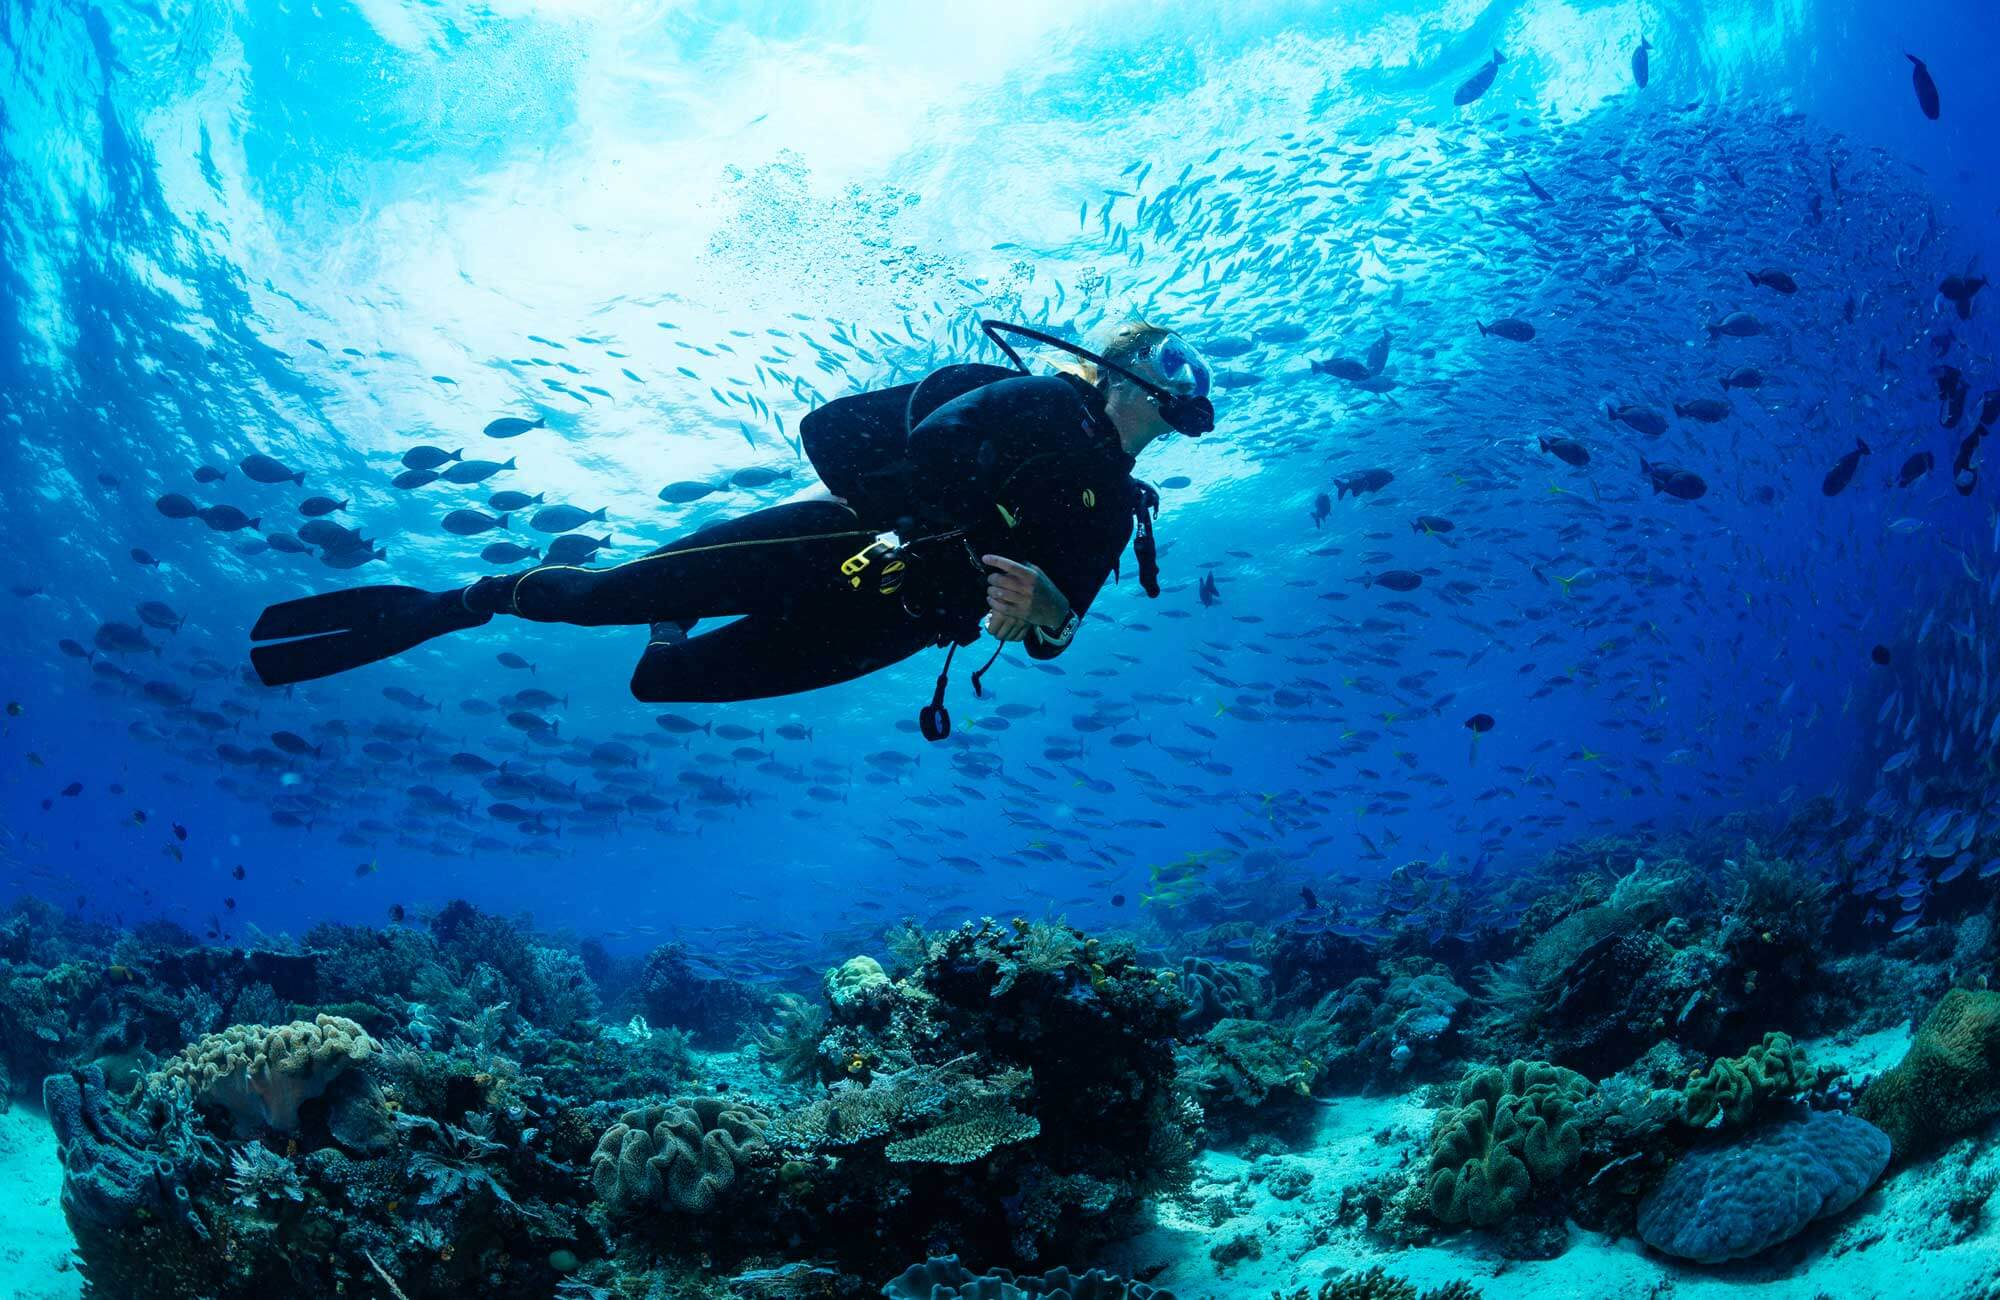 Avoid diving when feeling unwell or unhealthy